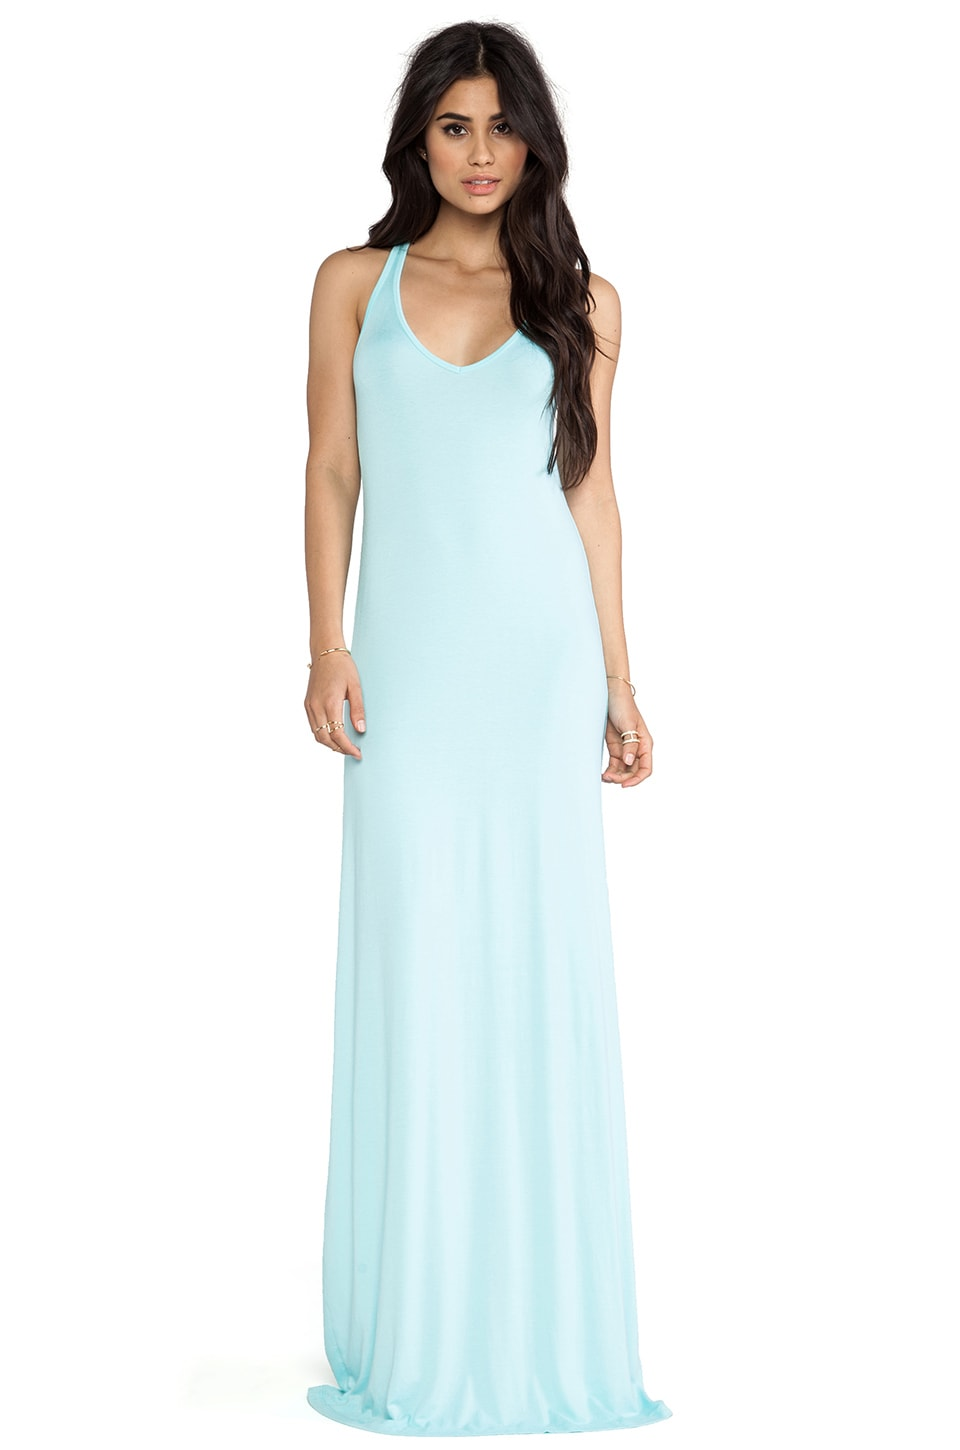 Feel the Piece V Maxi Dress in Aquatic